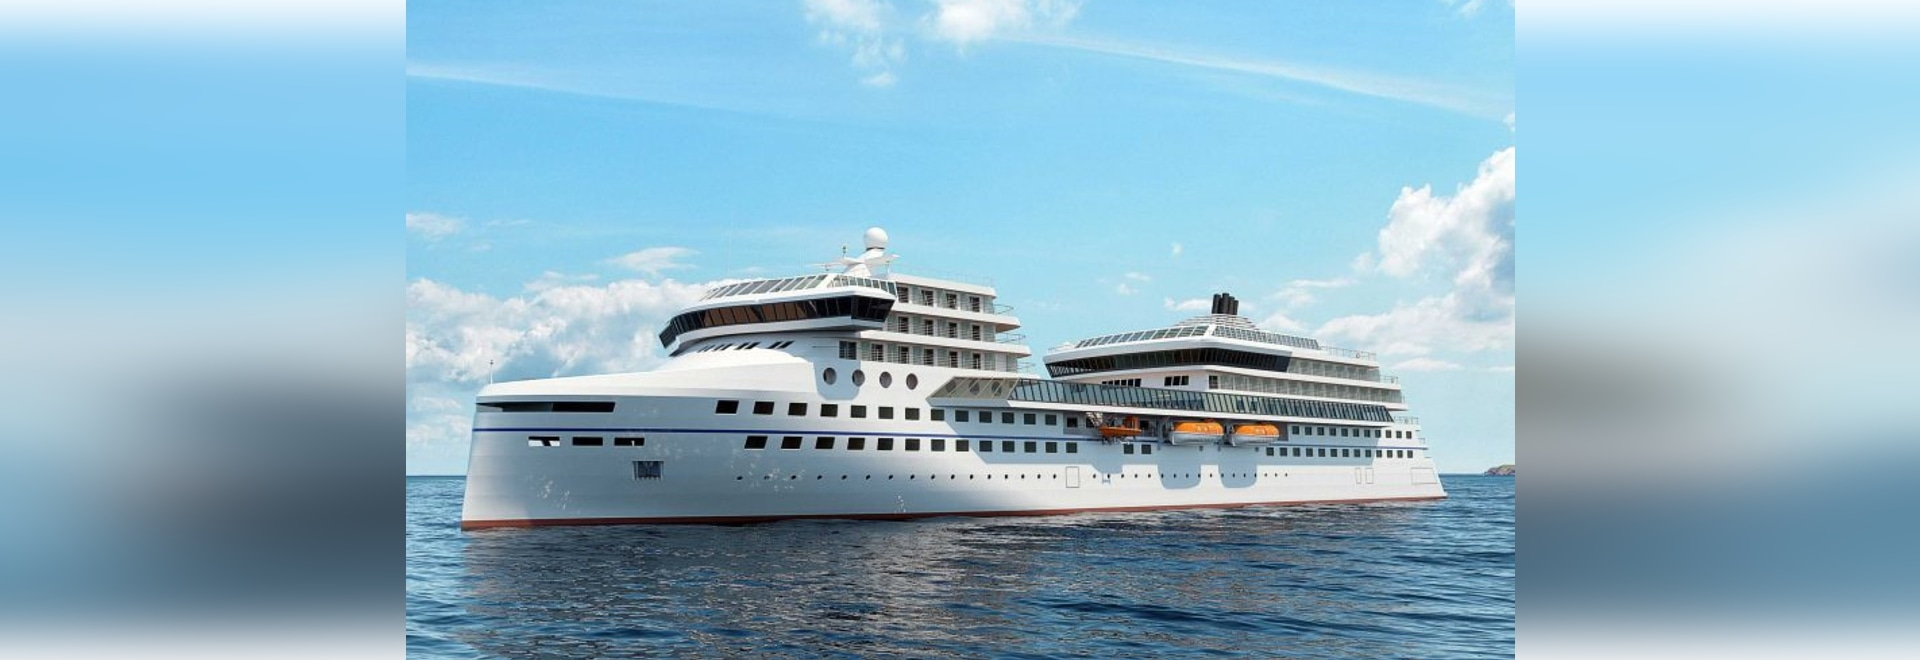 PHOENIX WORLD VILLAGE IS THE LATEST EXPEDITION CRUISE VESSEL DESIGN